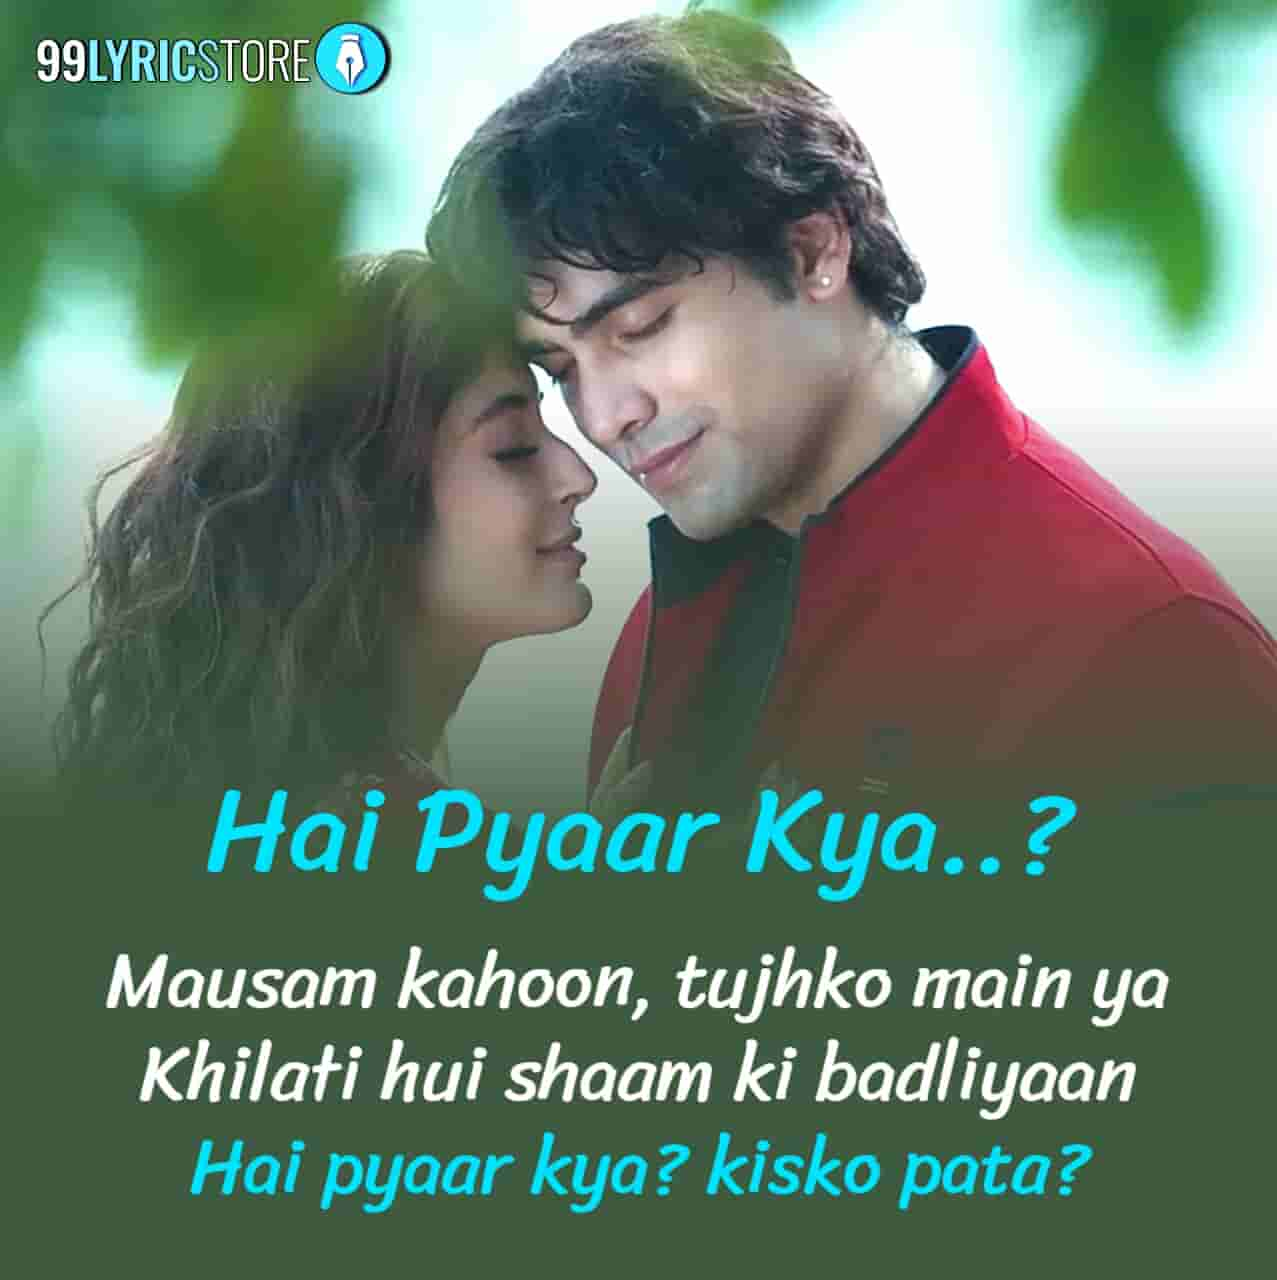 Hai Pyaar Kya Lyrics :- Jubin Nautiyal back with his new single 'Hai Pyaar Kya' is pouring our heart again to love someone beyond the boundaries. In this song, Kritika Kamra will also play leading role with Jubin Nautiyal. Music of this song given by Rocky Khanna and Jubin Nautiyal while this new song Hai Pyaar Kya Lyrics has penned by Rocky Khanna. This song is presented by T-Series label.